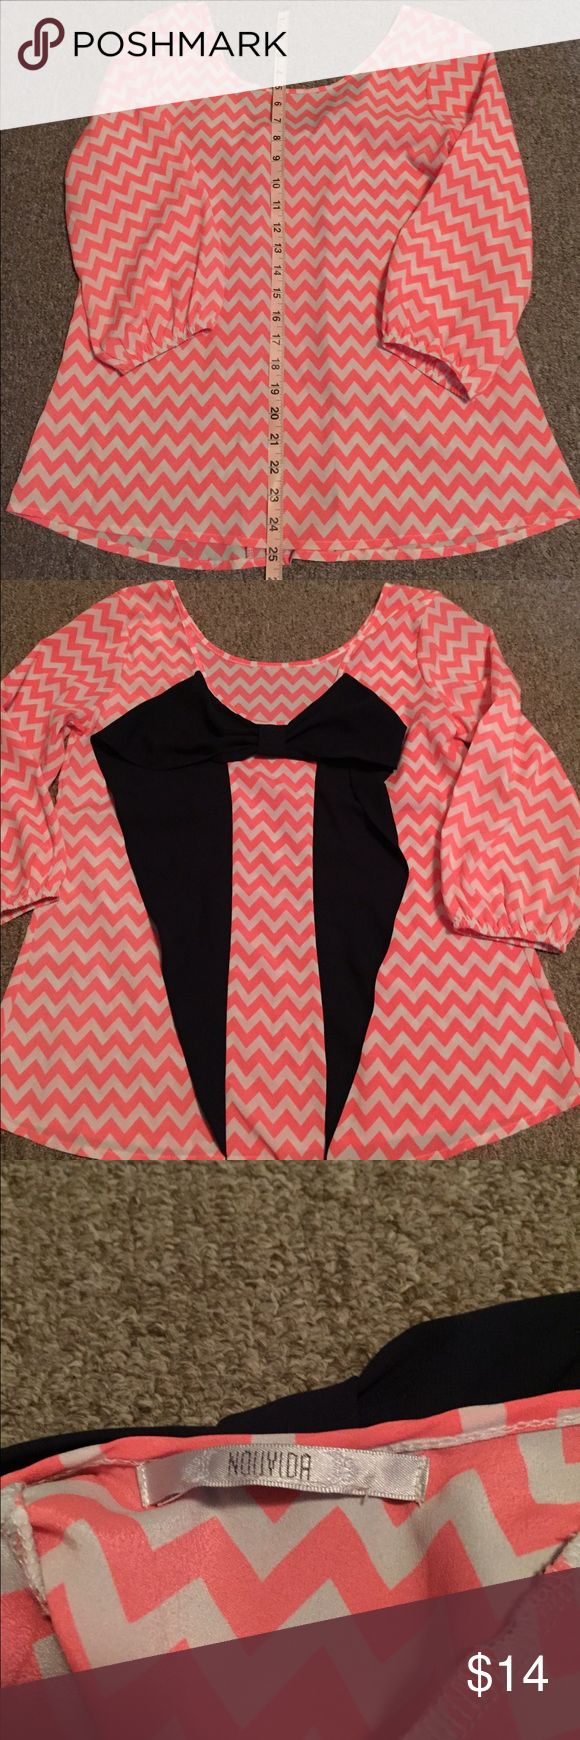 Pink chevron shirt with navy bow Pink Chevron shirt with a back navy bow🎀this top is adorable 😍 attached is pictures of the front and back, and also the brand. I bought this shirt used, but it does not fit me. 😕 I could not find a size on the tag, I'm assuming it's a small or medium. I can get additional measurements to help out the best I can! Tops Blouses